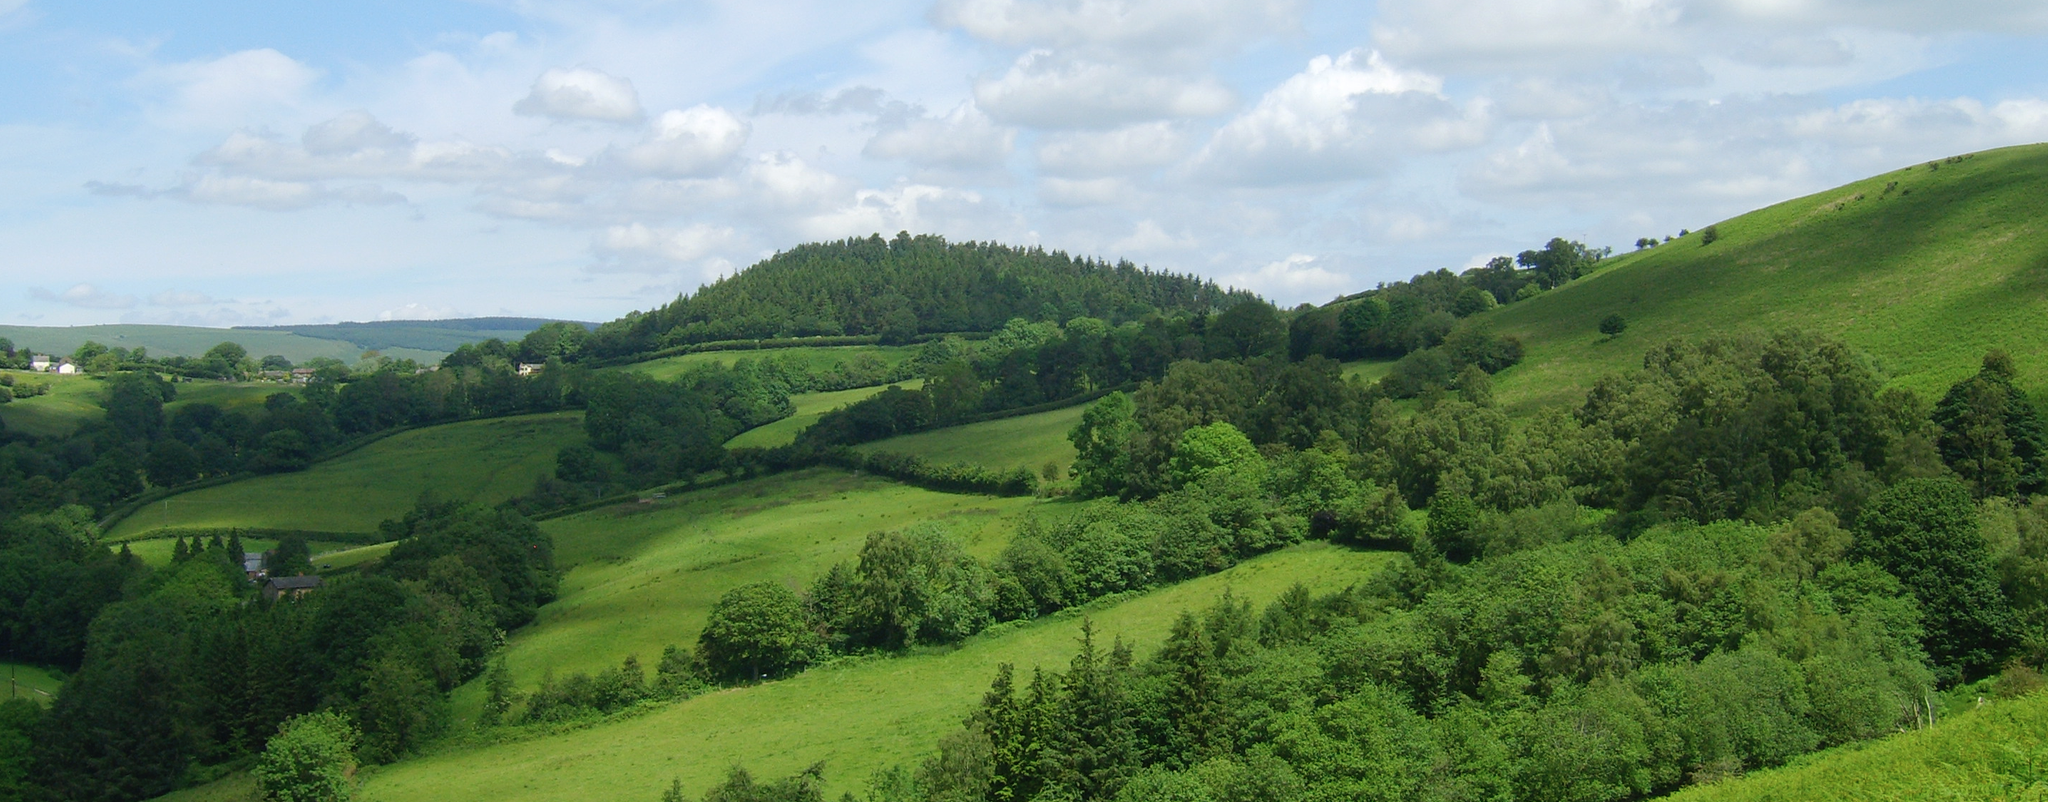 The verdant green countryside of South Shropshire in Spring